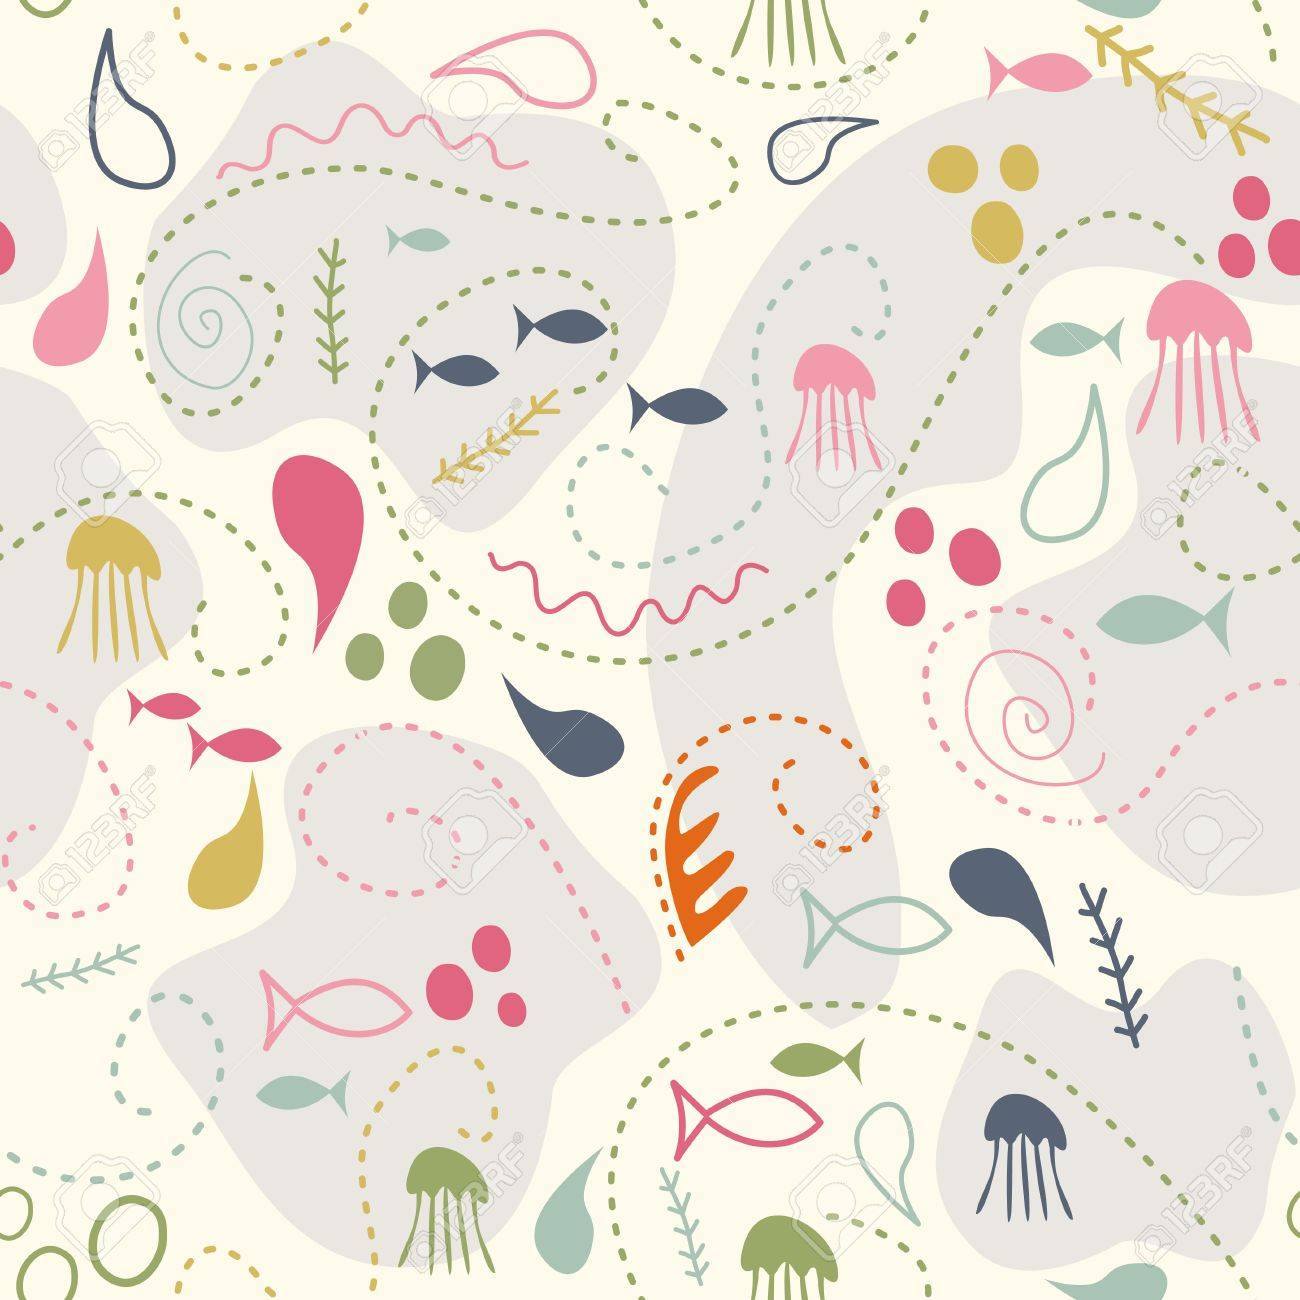 sea world seamless pattern, under water world wallpaper with fish,octopus and vegetation Stock Vector - 25147157